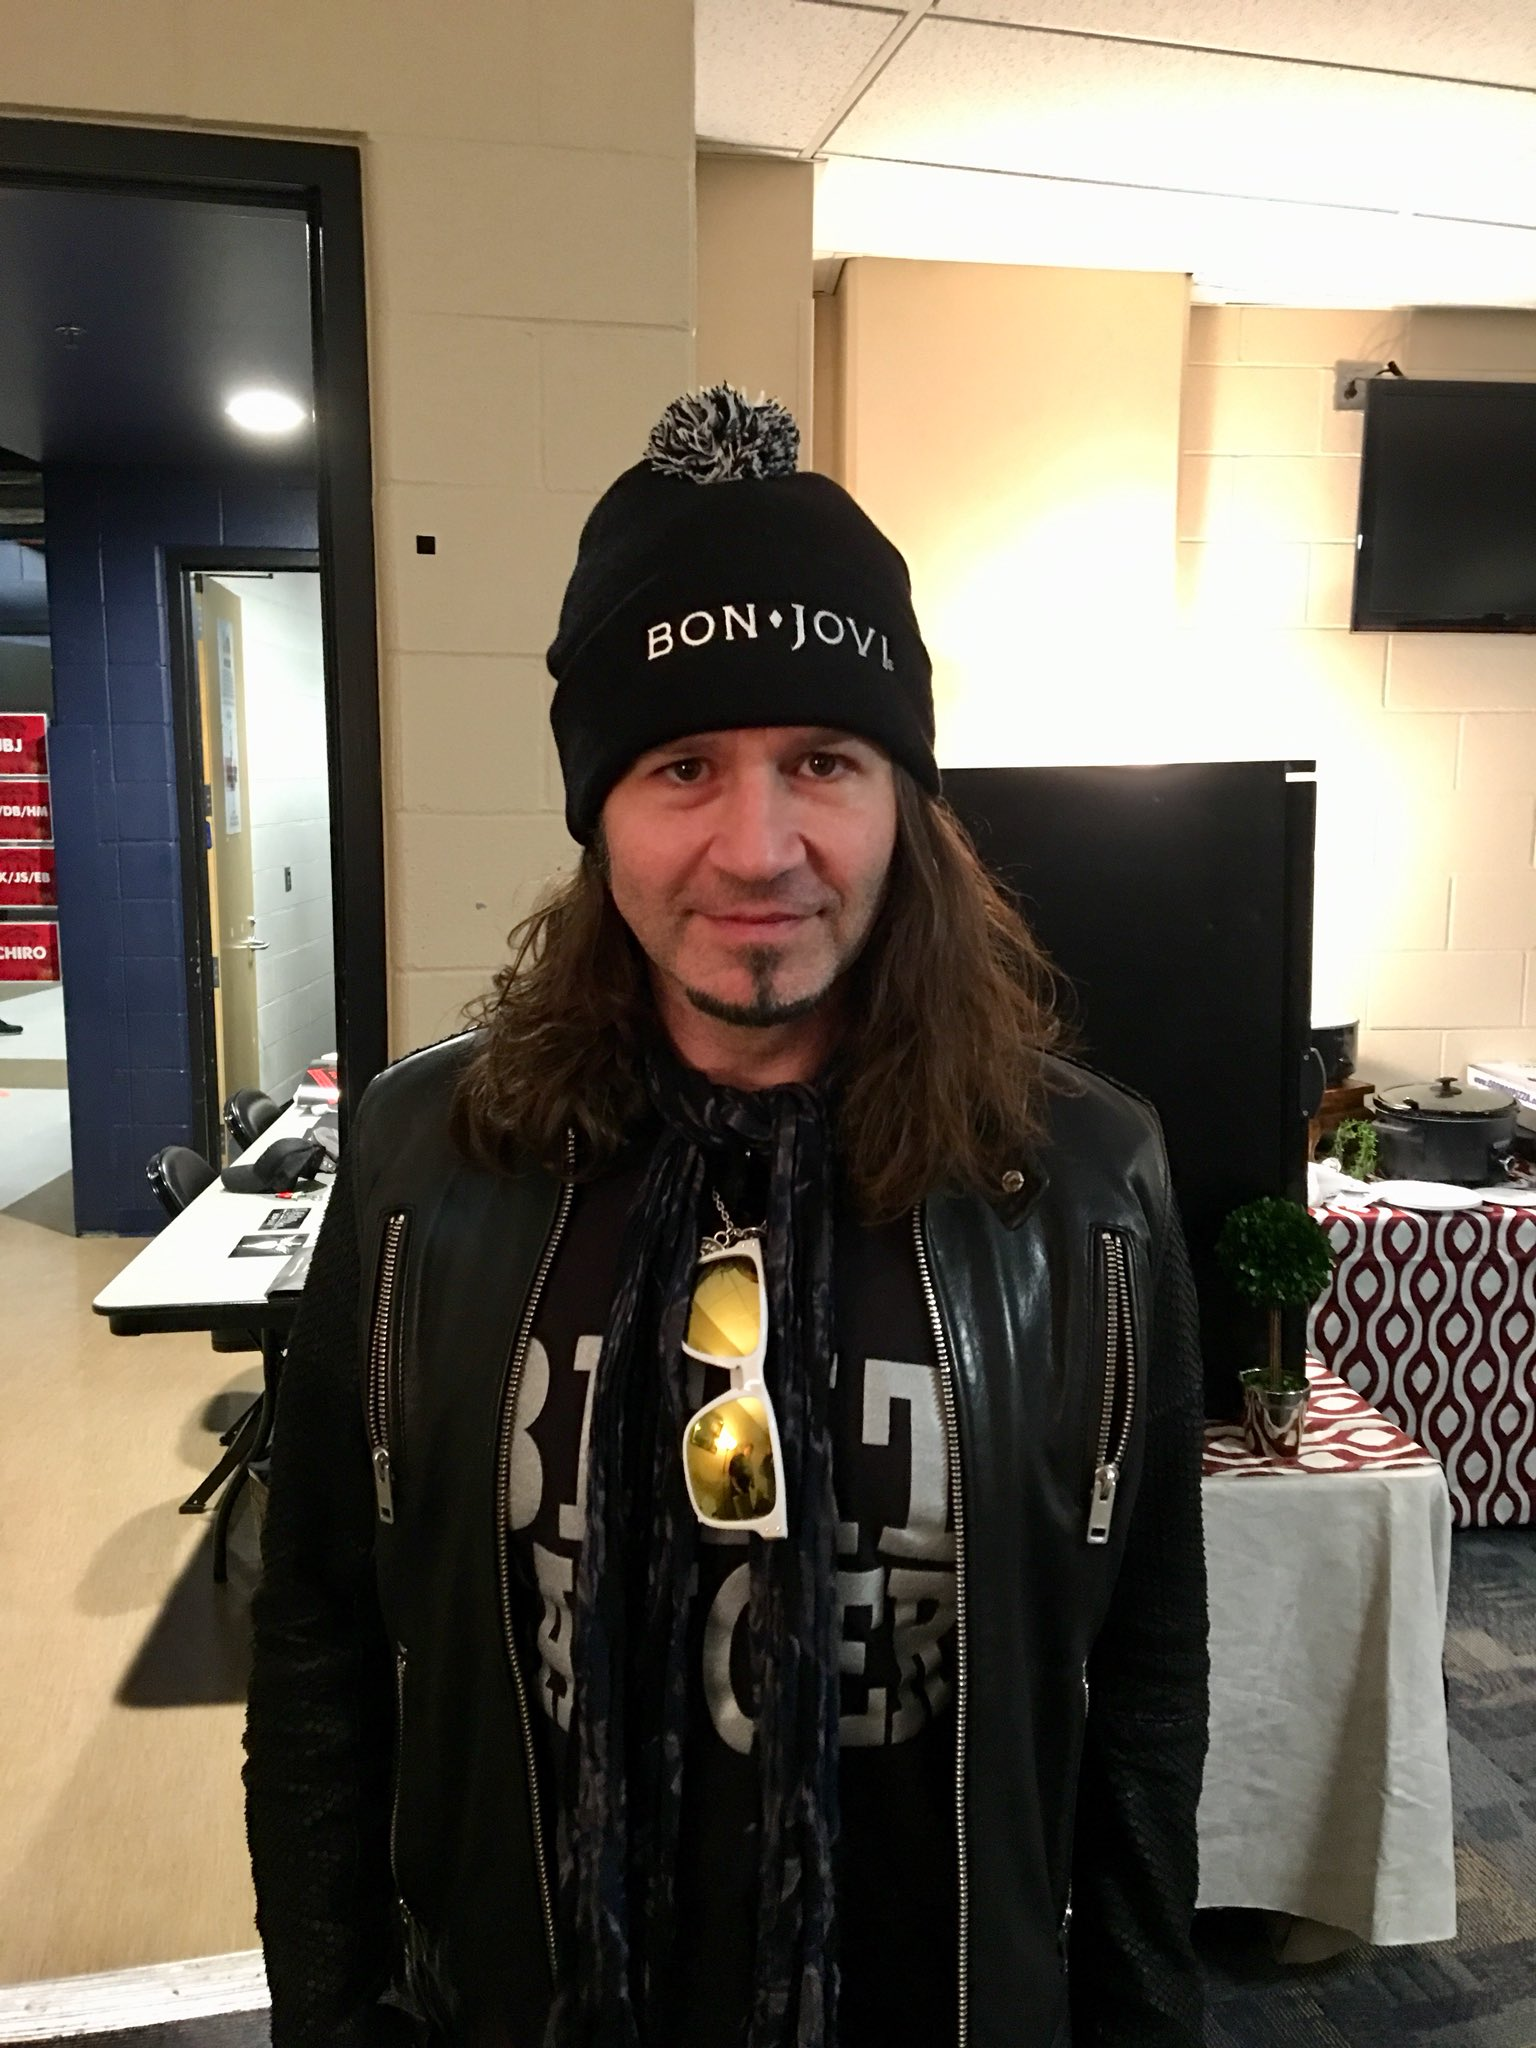 .@TheRealPhilX rocking the beanie! Check out our Instagram story for a sneak peek of the #THINFStour merch! https://t.co/yIZpQJe32i